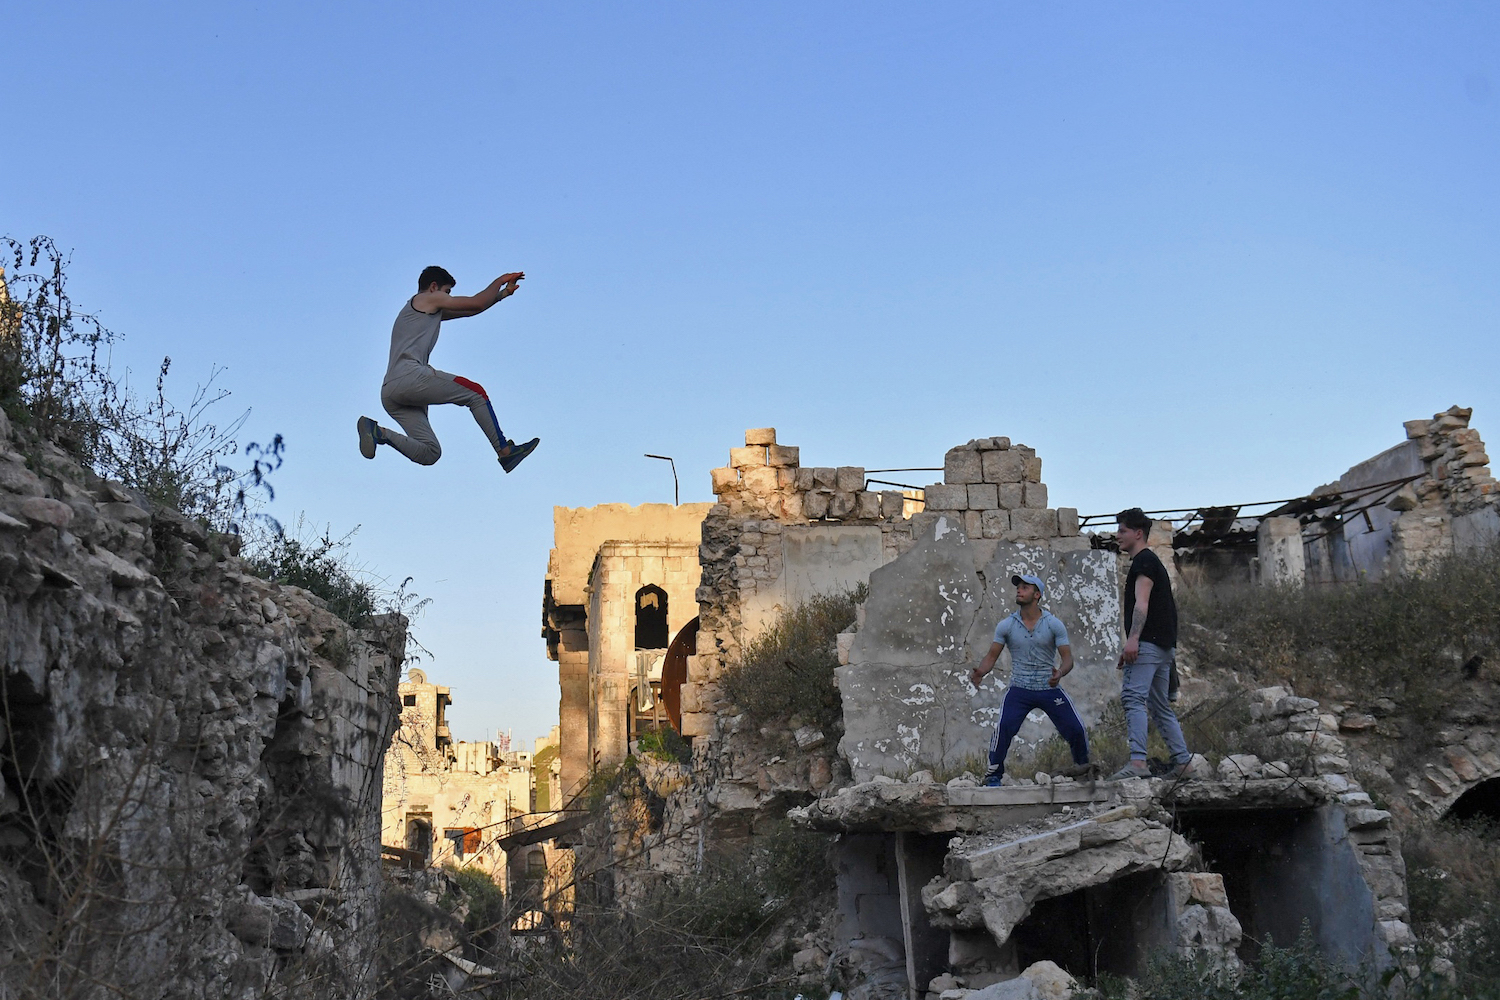 Syrian youths practice parkour in Aleppo, northern Syria, on April 7, 2018. In the absence of special facilities and equipment for the sport, such as padding to protect against falls, athletes often risk serious injury. And parkour in east Aleppo comes with an additional challenge: remnants of war.  / AFP PHOTO / George OURFALIAN        (Photo credit should read GEORGE OURFALIAN/AFP/Getty Images)